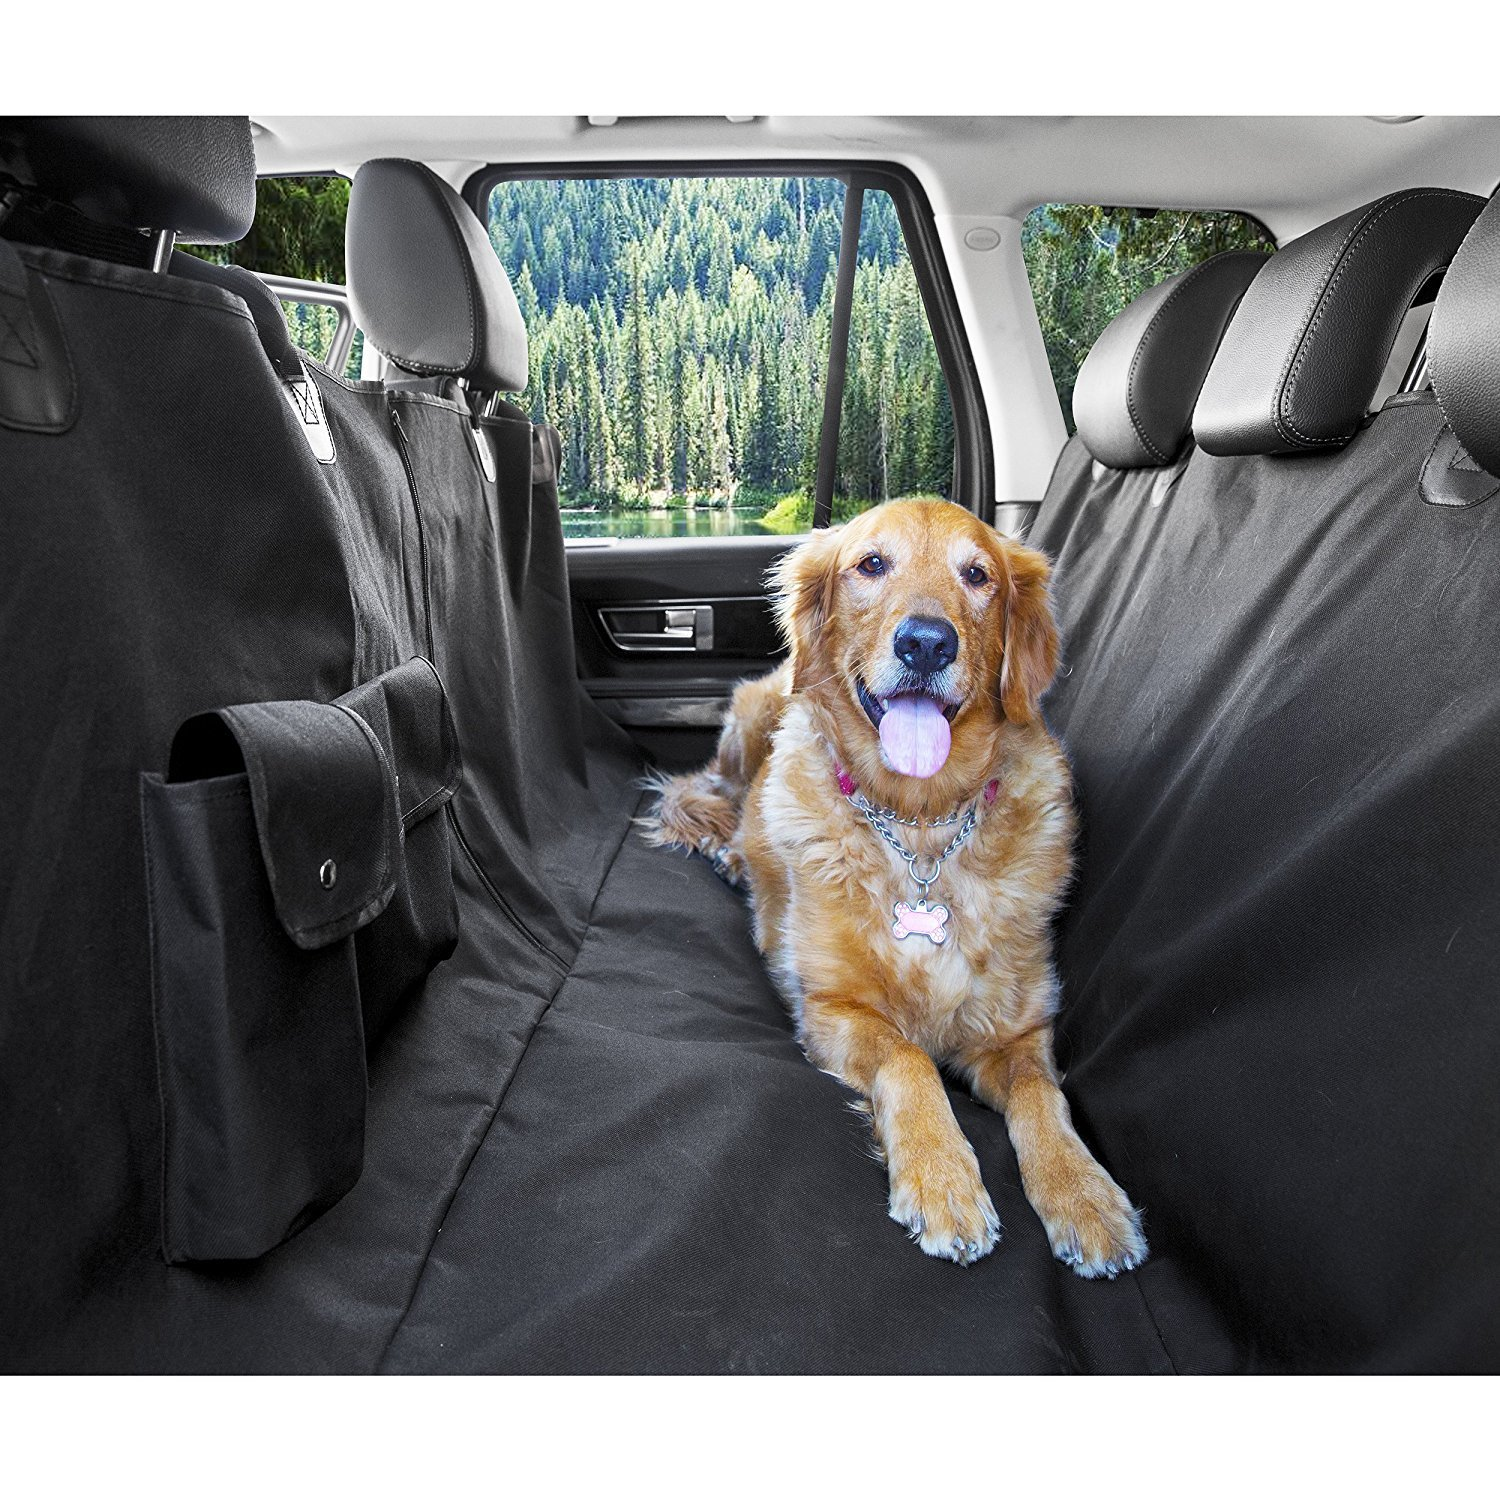 updated pets protectortravel with safety dog car anchors nonslip hammock backseat scratch version bench product topelek cover seat proof pet waterproof coversuniversal